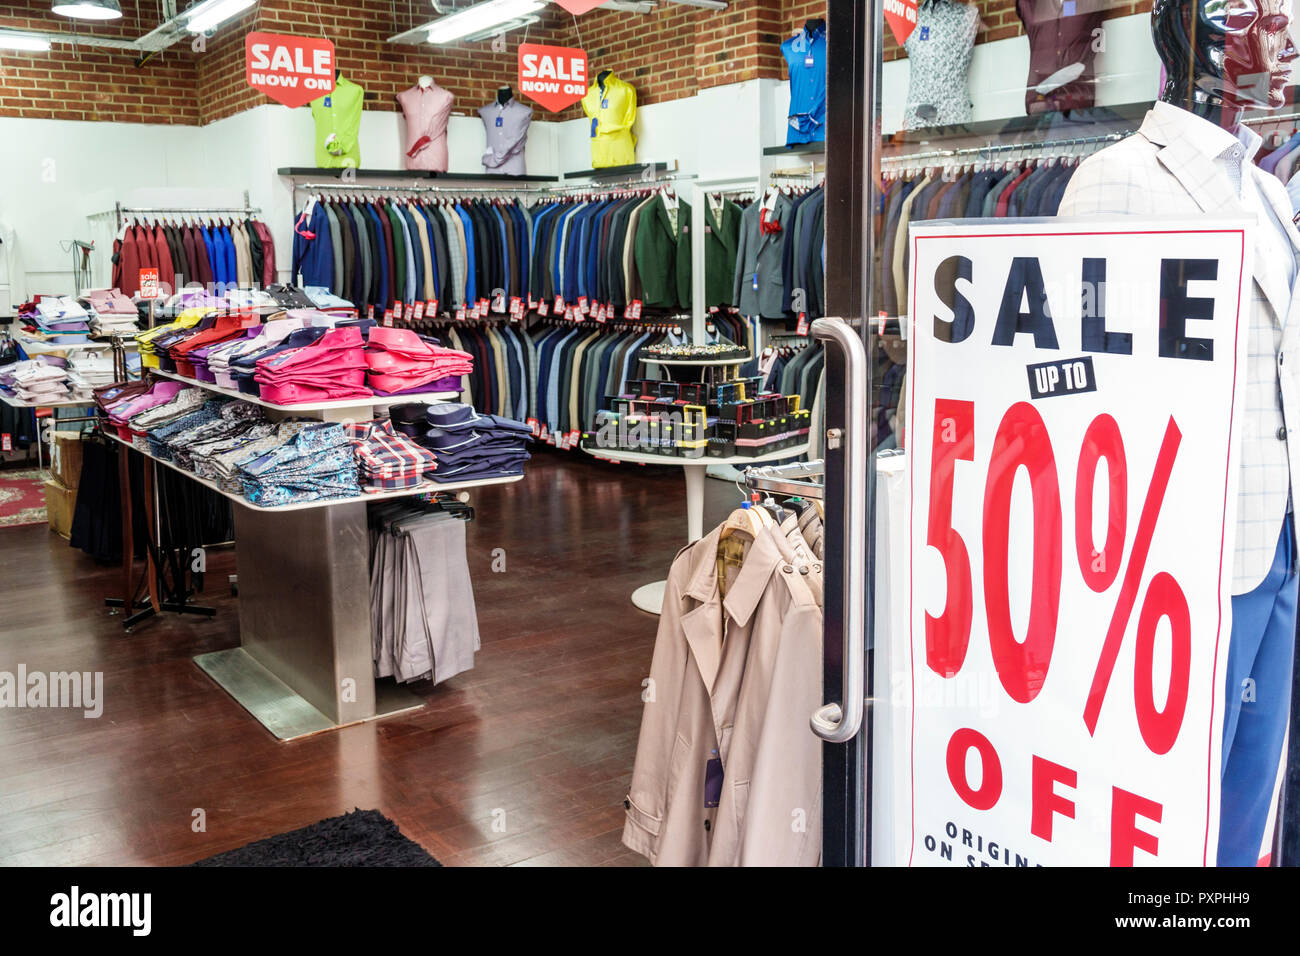 London England United Kingdom Great Britain Piccadilly Mayfair Sergio Uomo shopping men's clothing store interior entrance display sale sign sale 50% - Stock Image